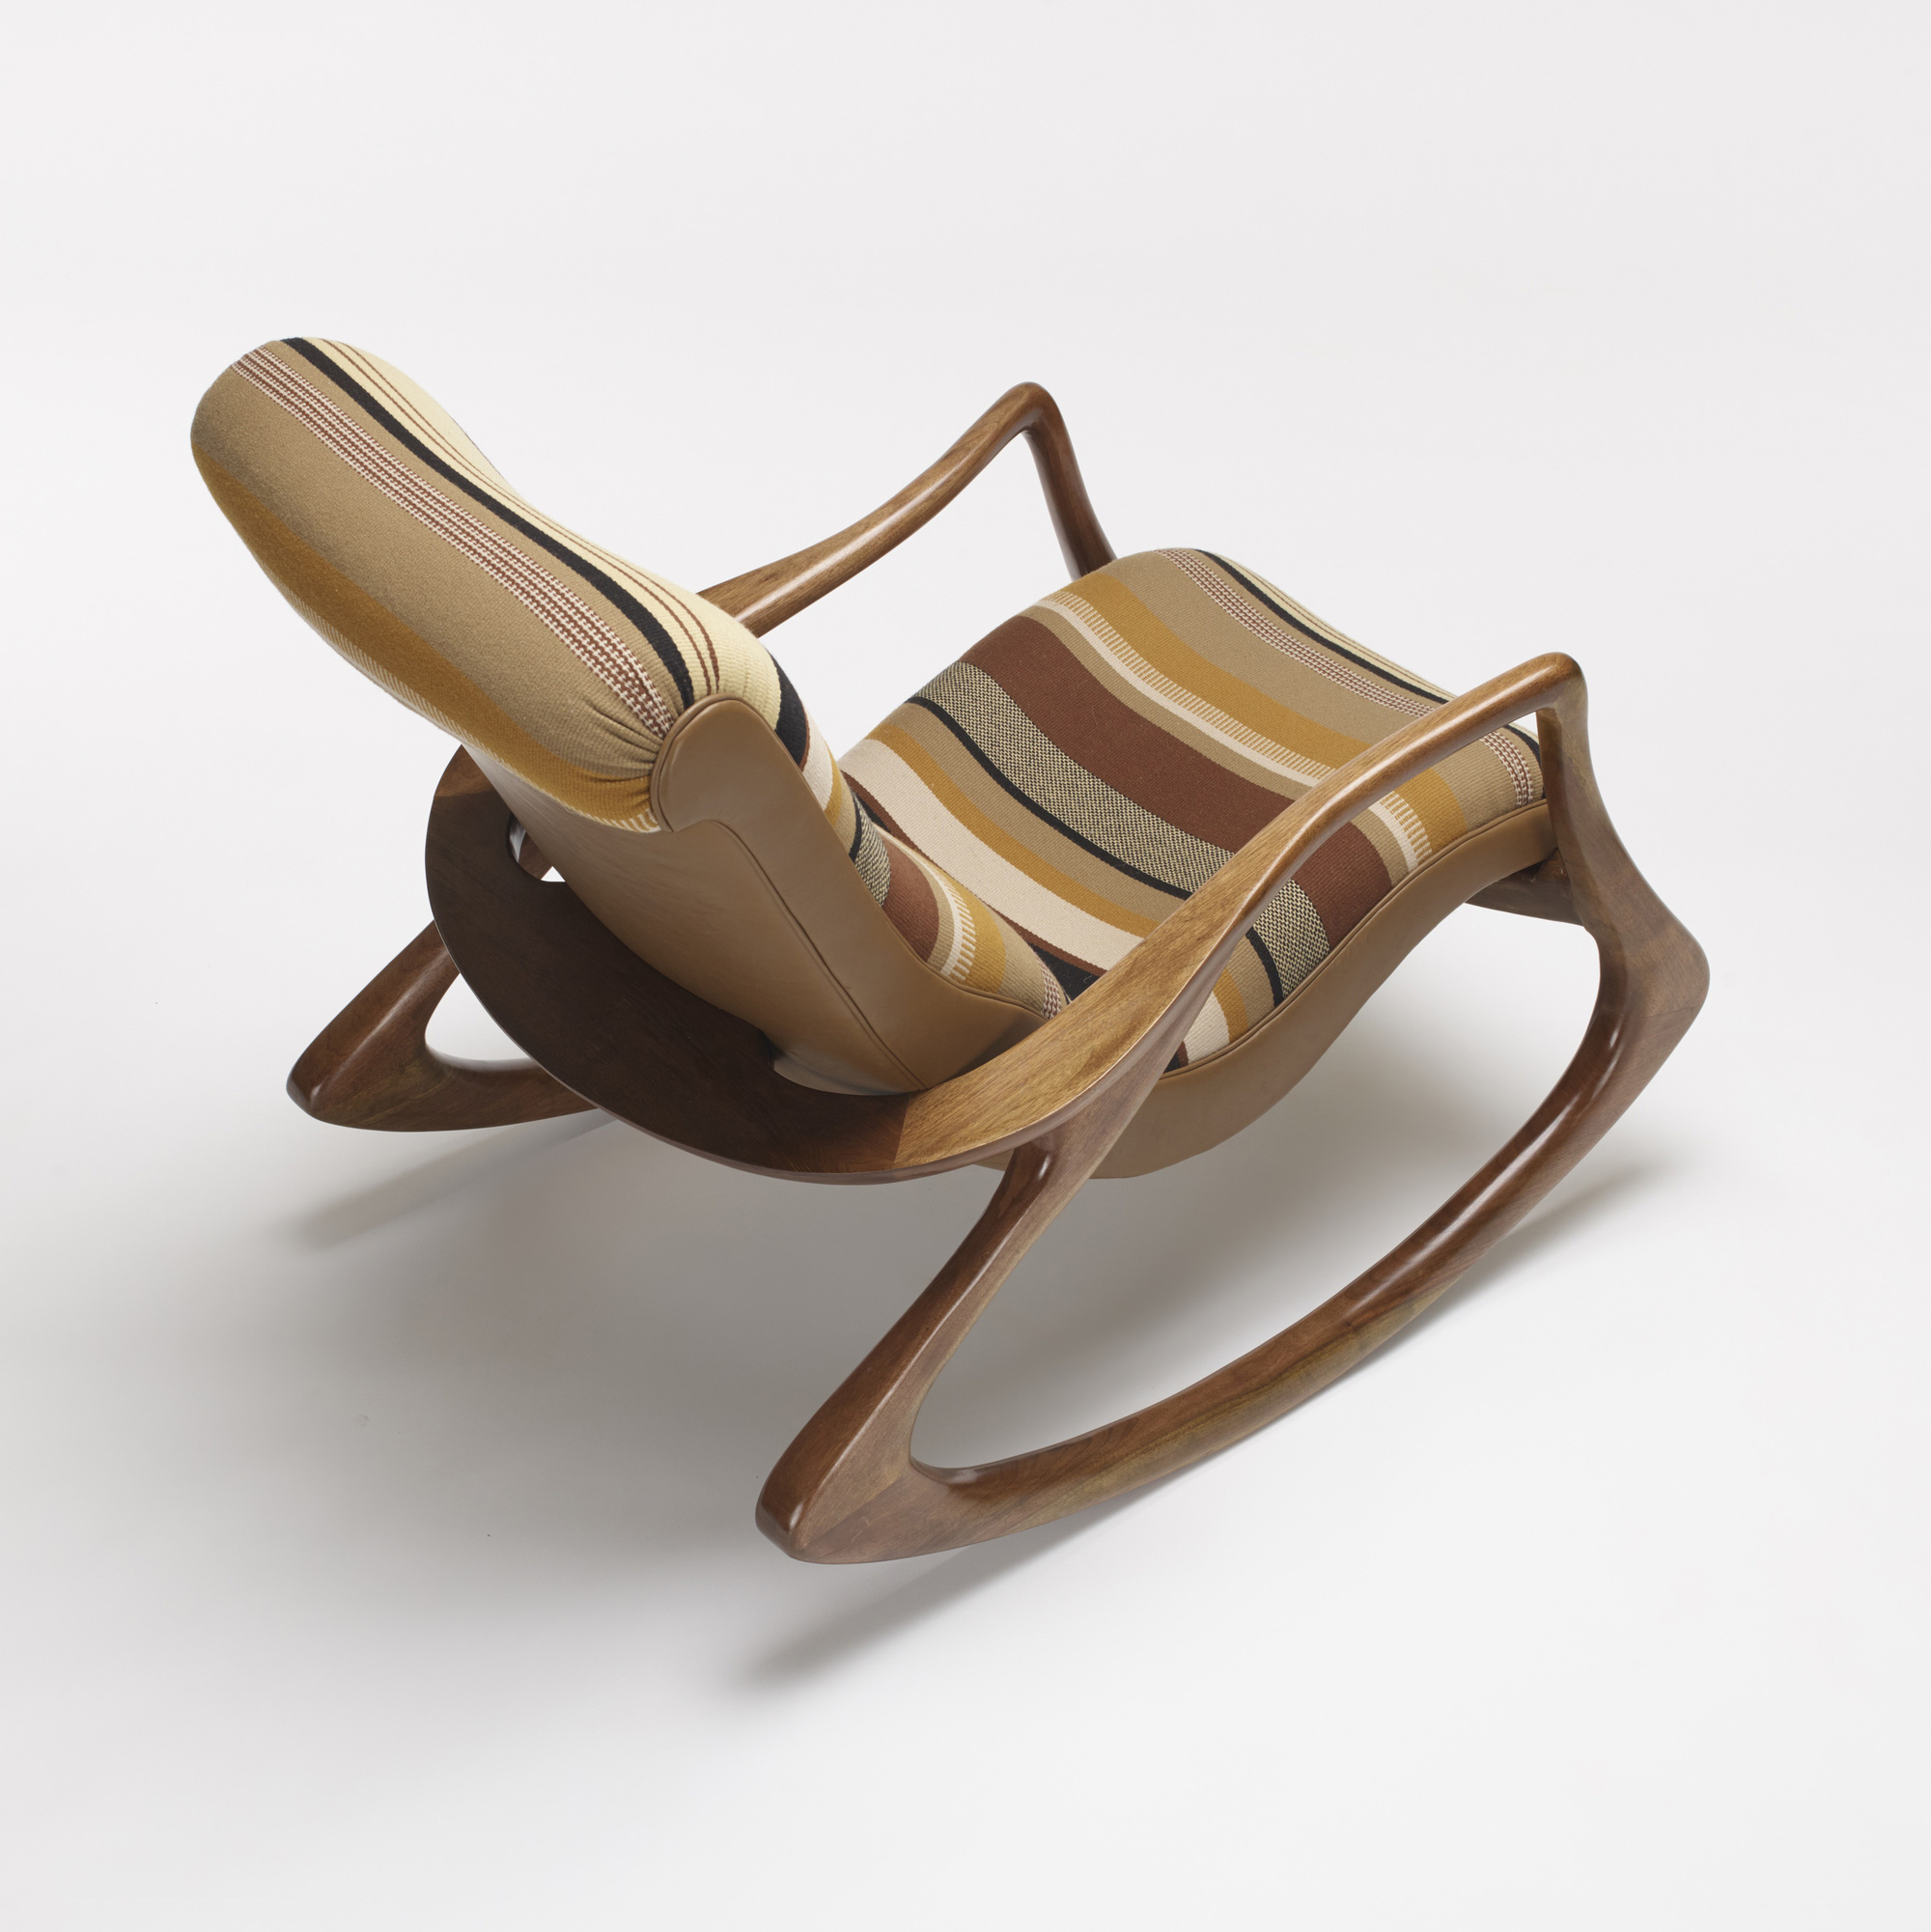 vladimir kagan rocking chair isaac swivel 213 sculpted and ottoman important 3 of 4